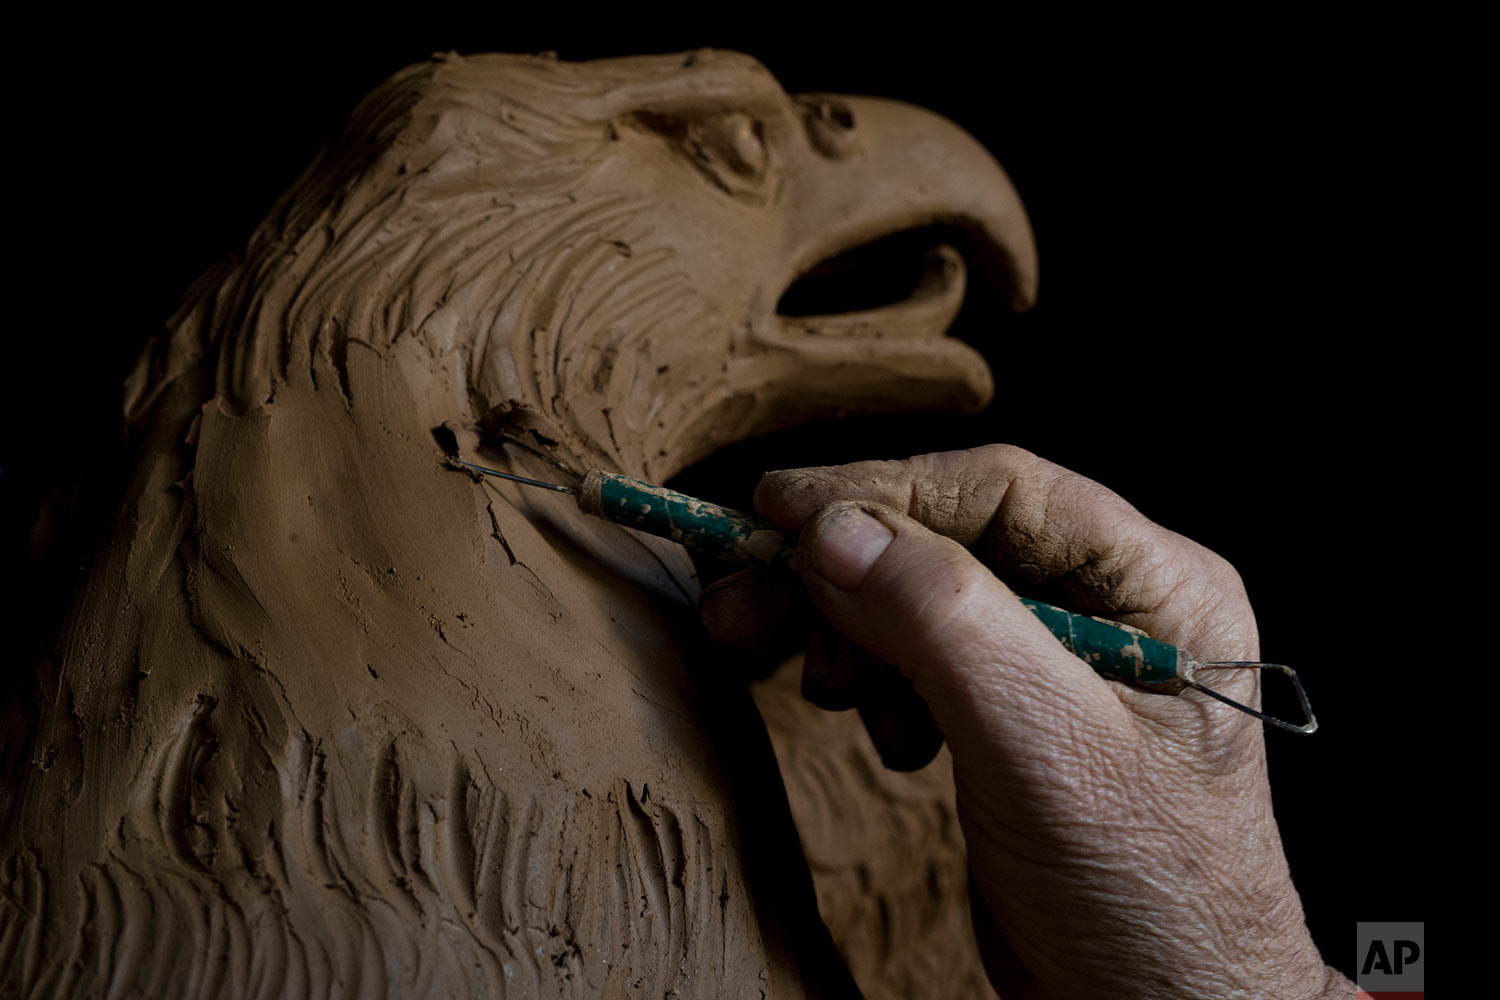 In this Tuesday, Nov. 14, 2017 photo, sculptor and ceramicist Haralambos Goumas works on a terracotta eagle, at his workshop, in the Egaleo suburb of Athens. (AP Photo/Petros Giannakouris)